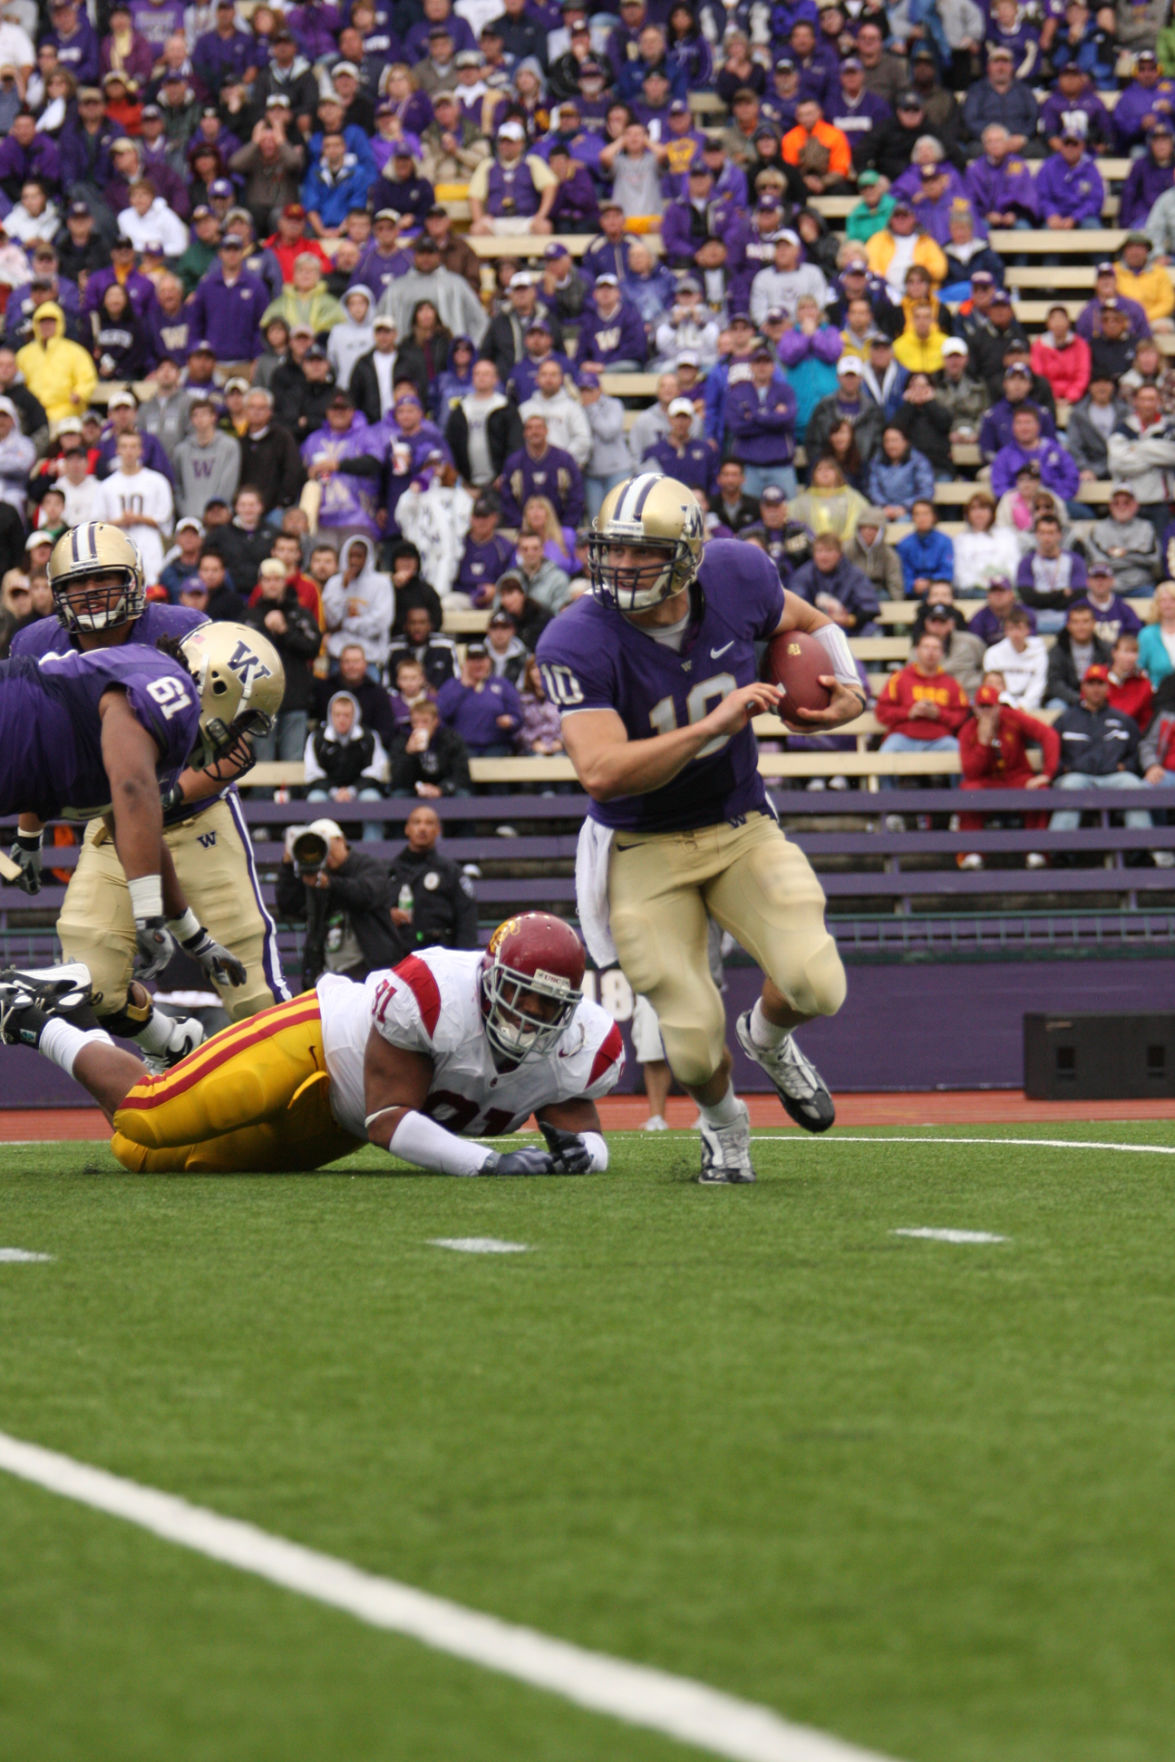 Ten years later: How the UW's upset over USC changed Washington football for good